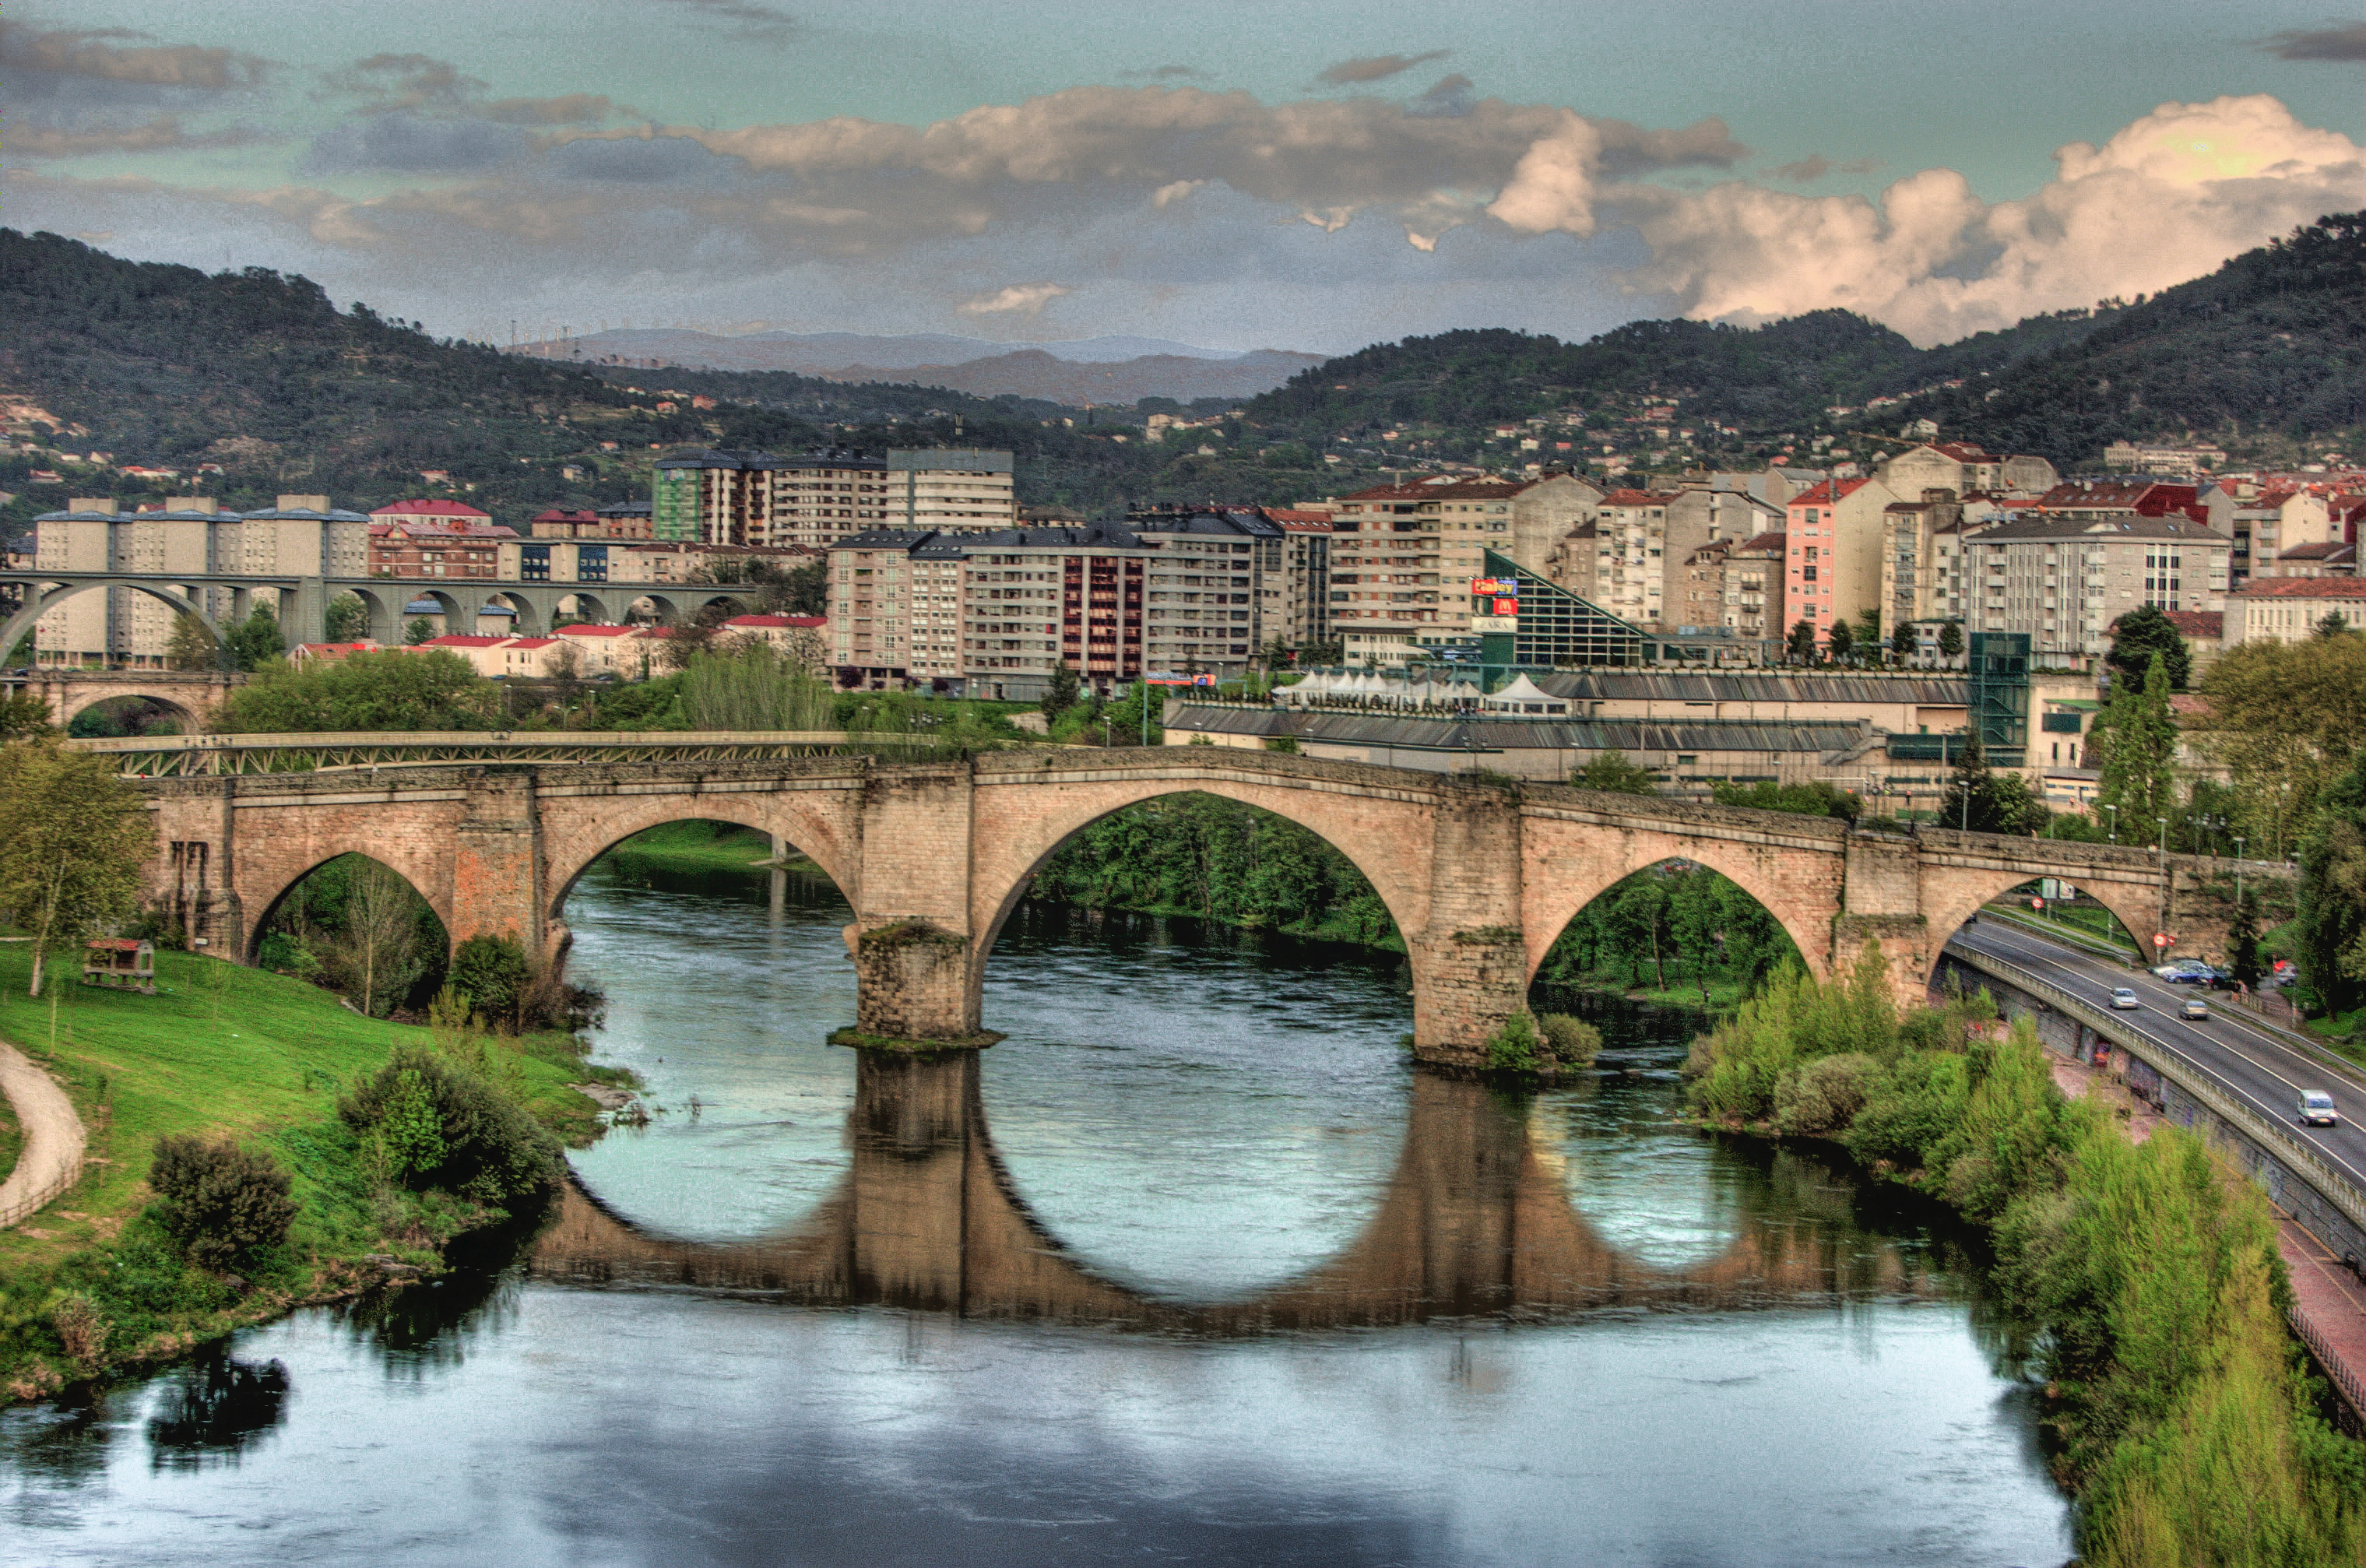 Archivo:Roman bridge, Ourense (Spain).jpg - Wikipedia, la ...